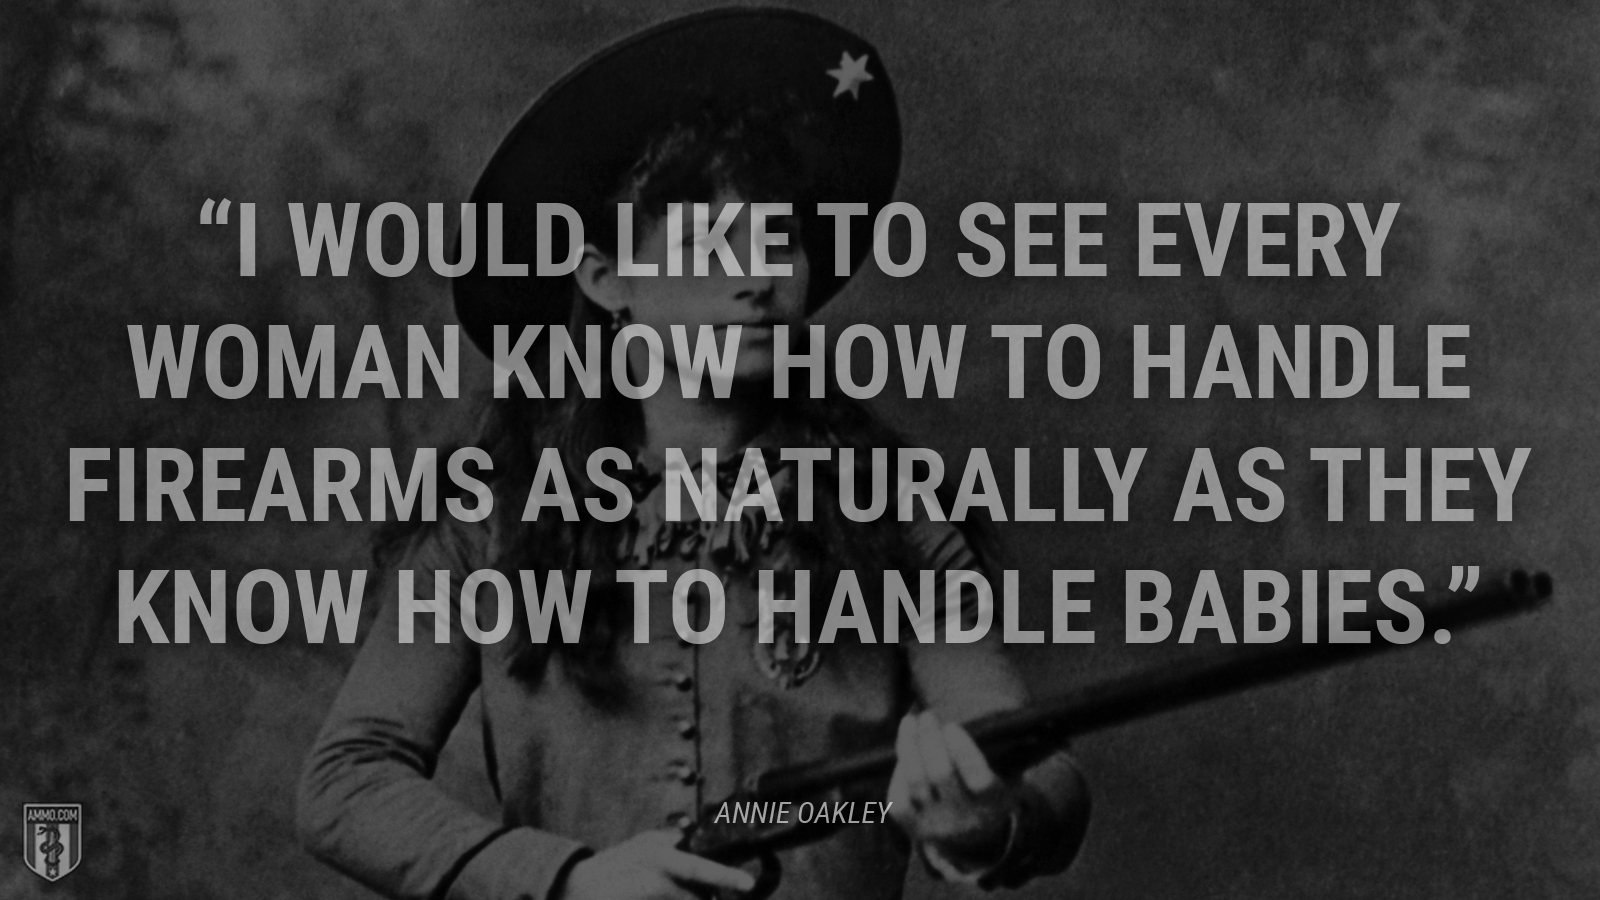 """I would like to see every woman know how to handle firearms as naturally as they know how to handle babies."" - Annie Oakley"